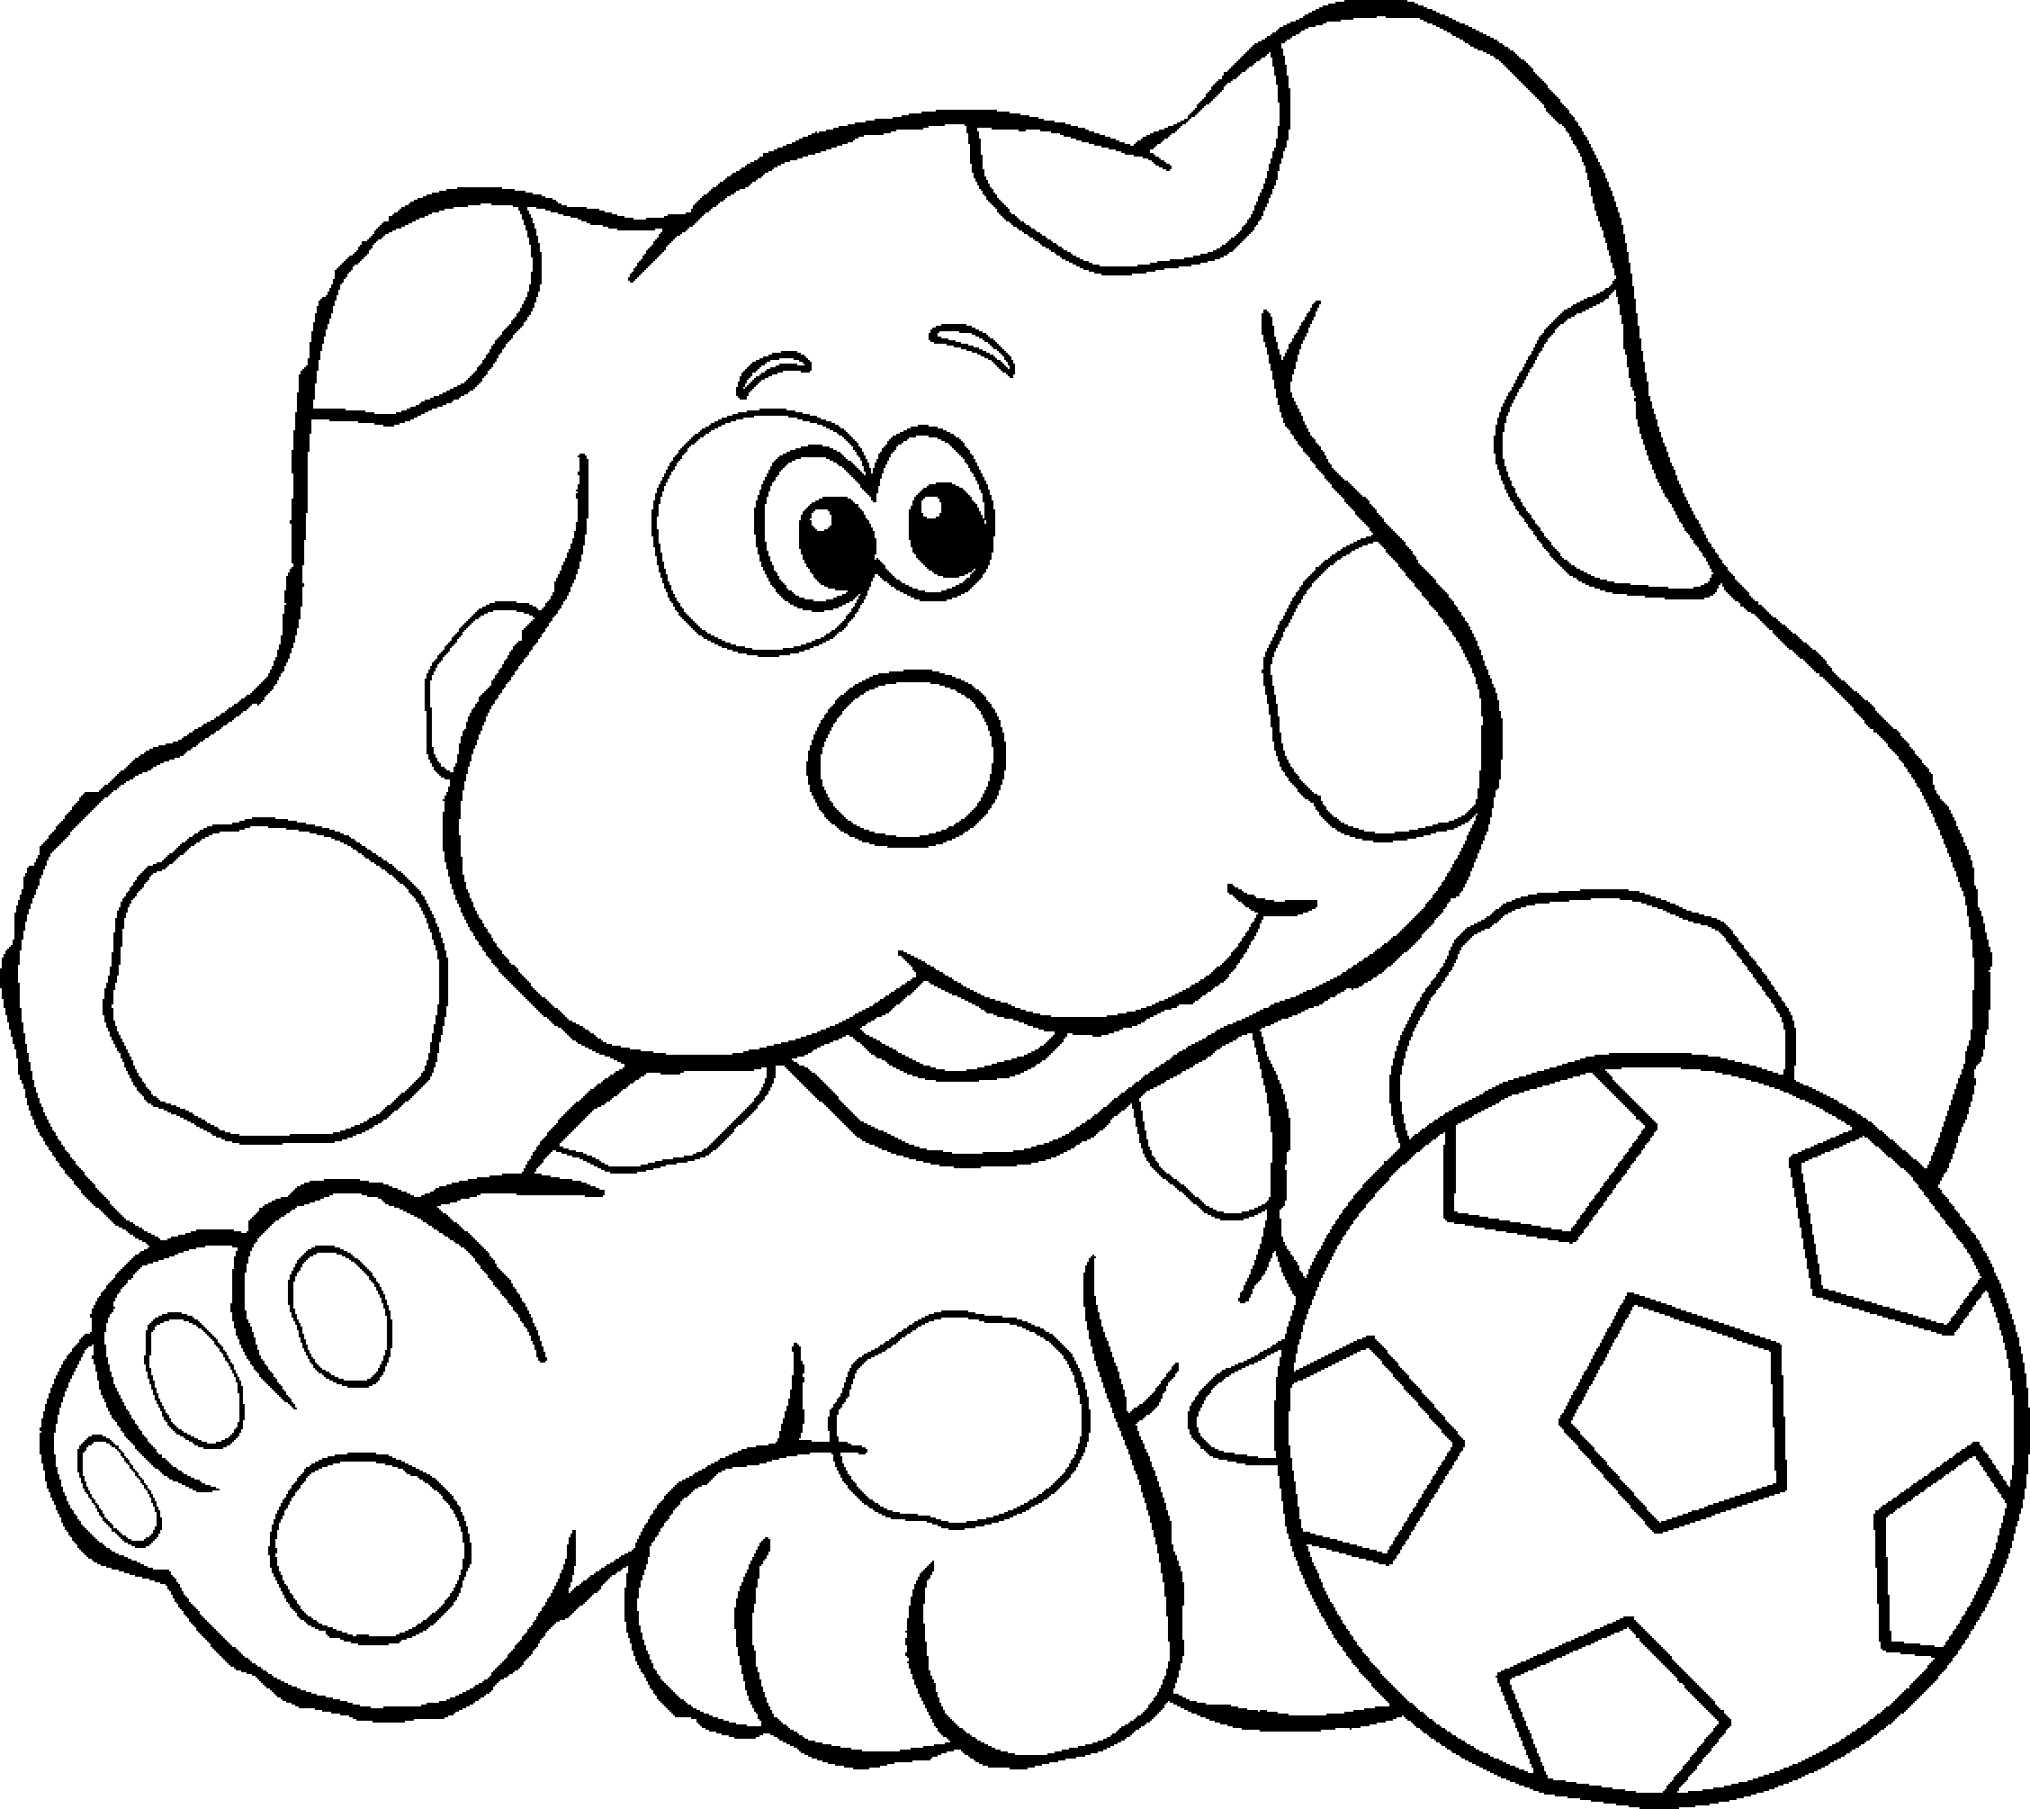 Blues Clues Paw Print Coloring Page